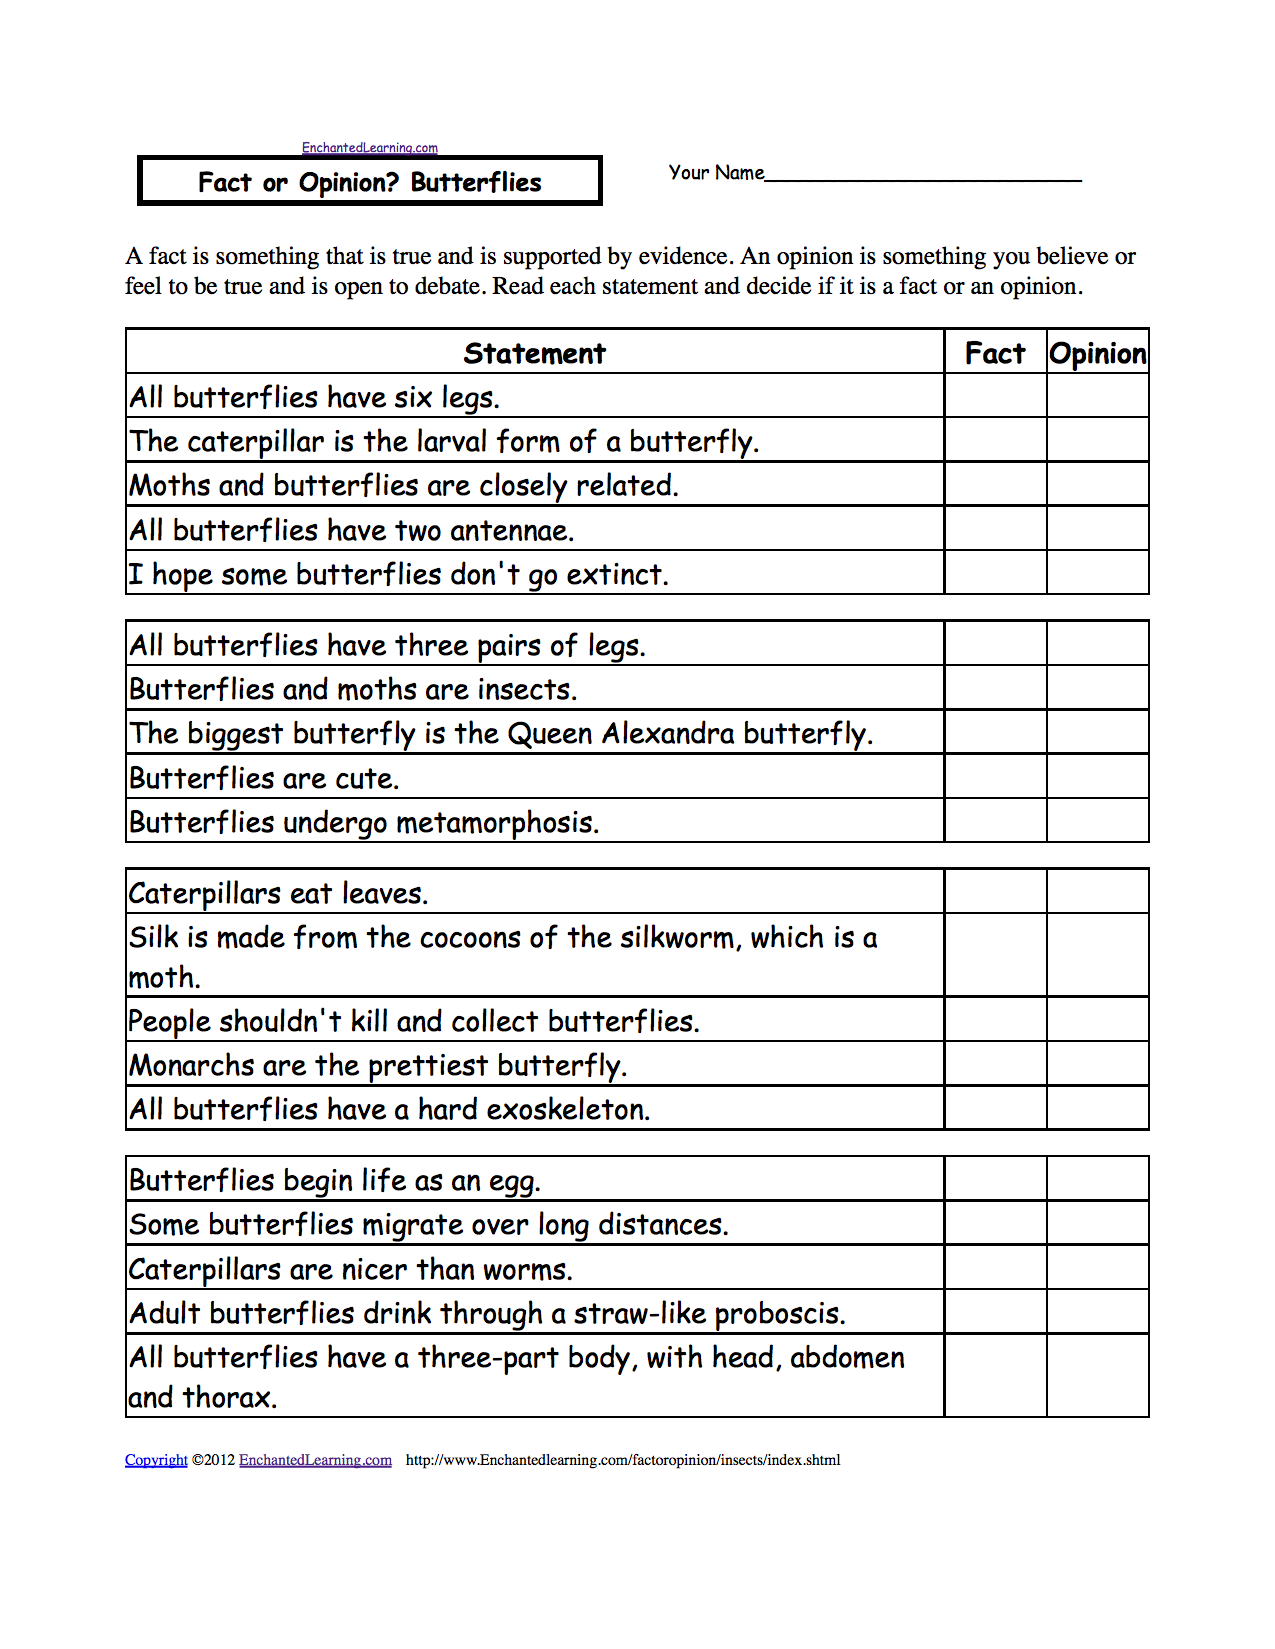 Fact Or Opinion Checkmark Worksheets To Print Enchantedlearning